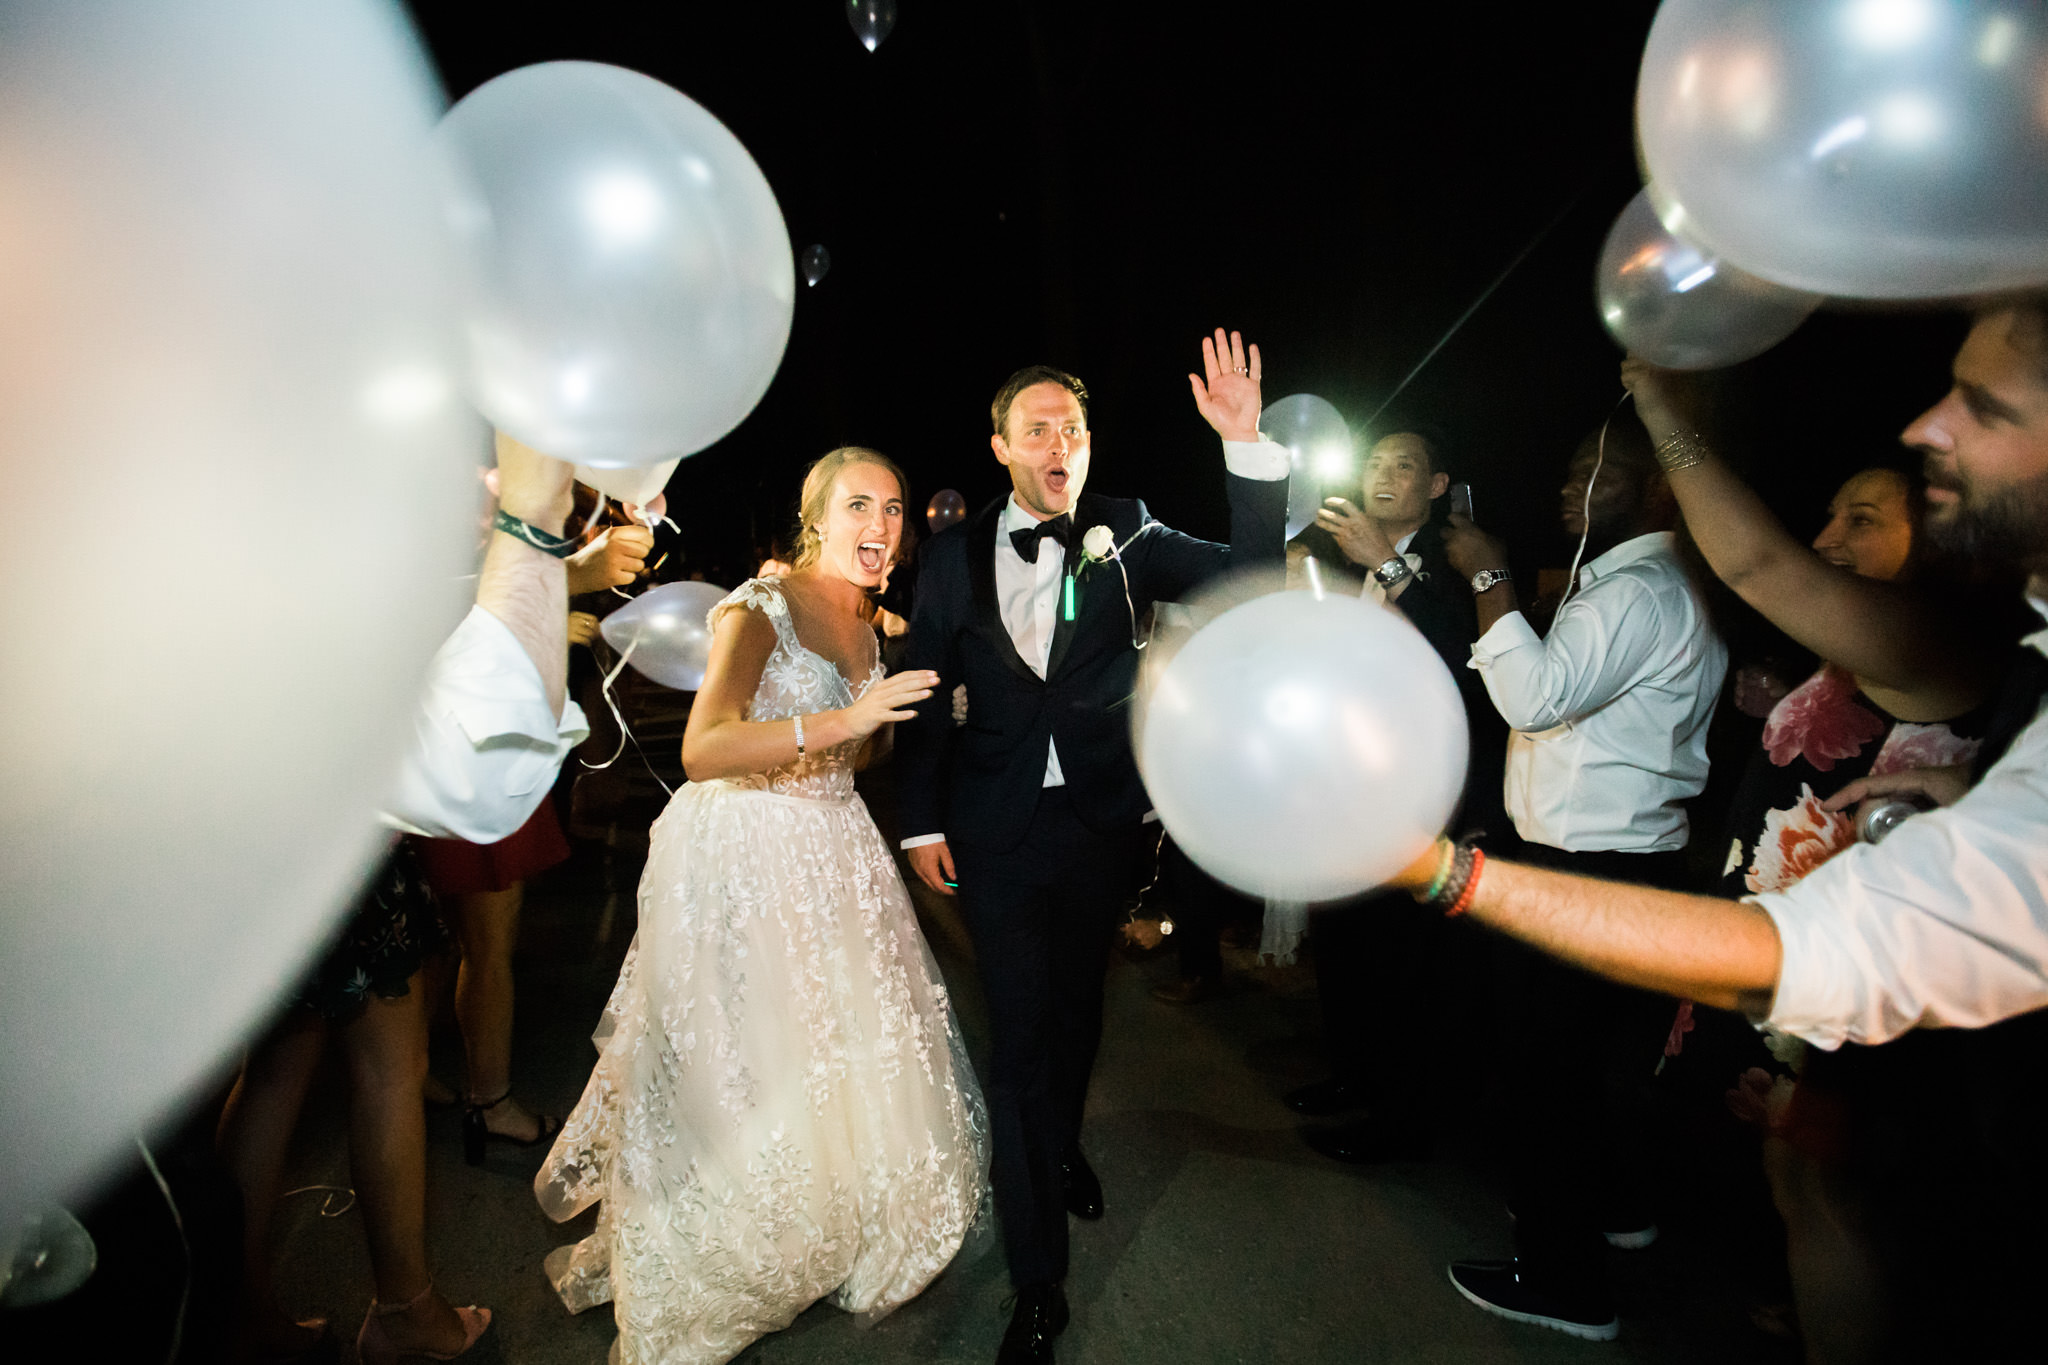 low light wedding photography example of couple outside during LED balloons